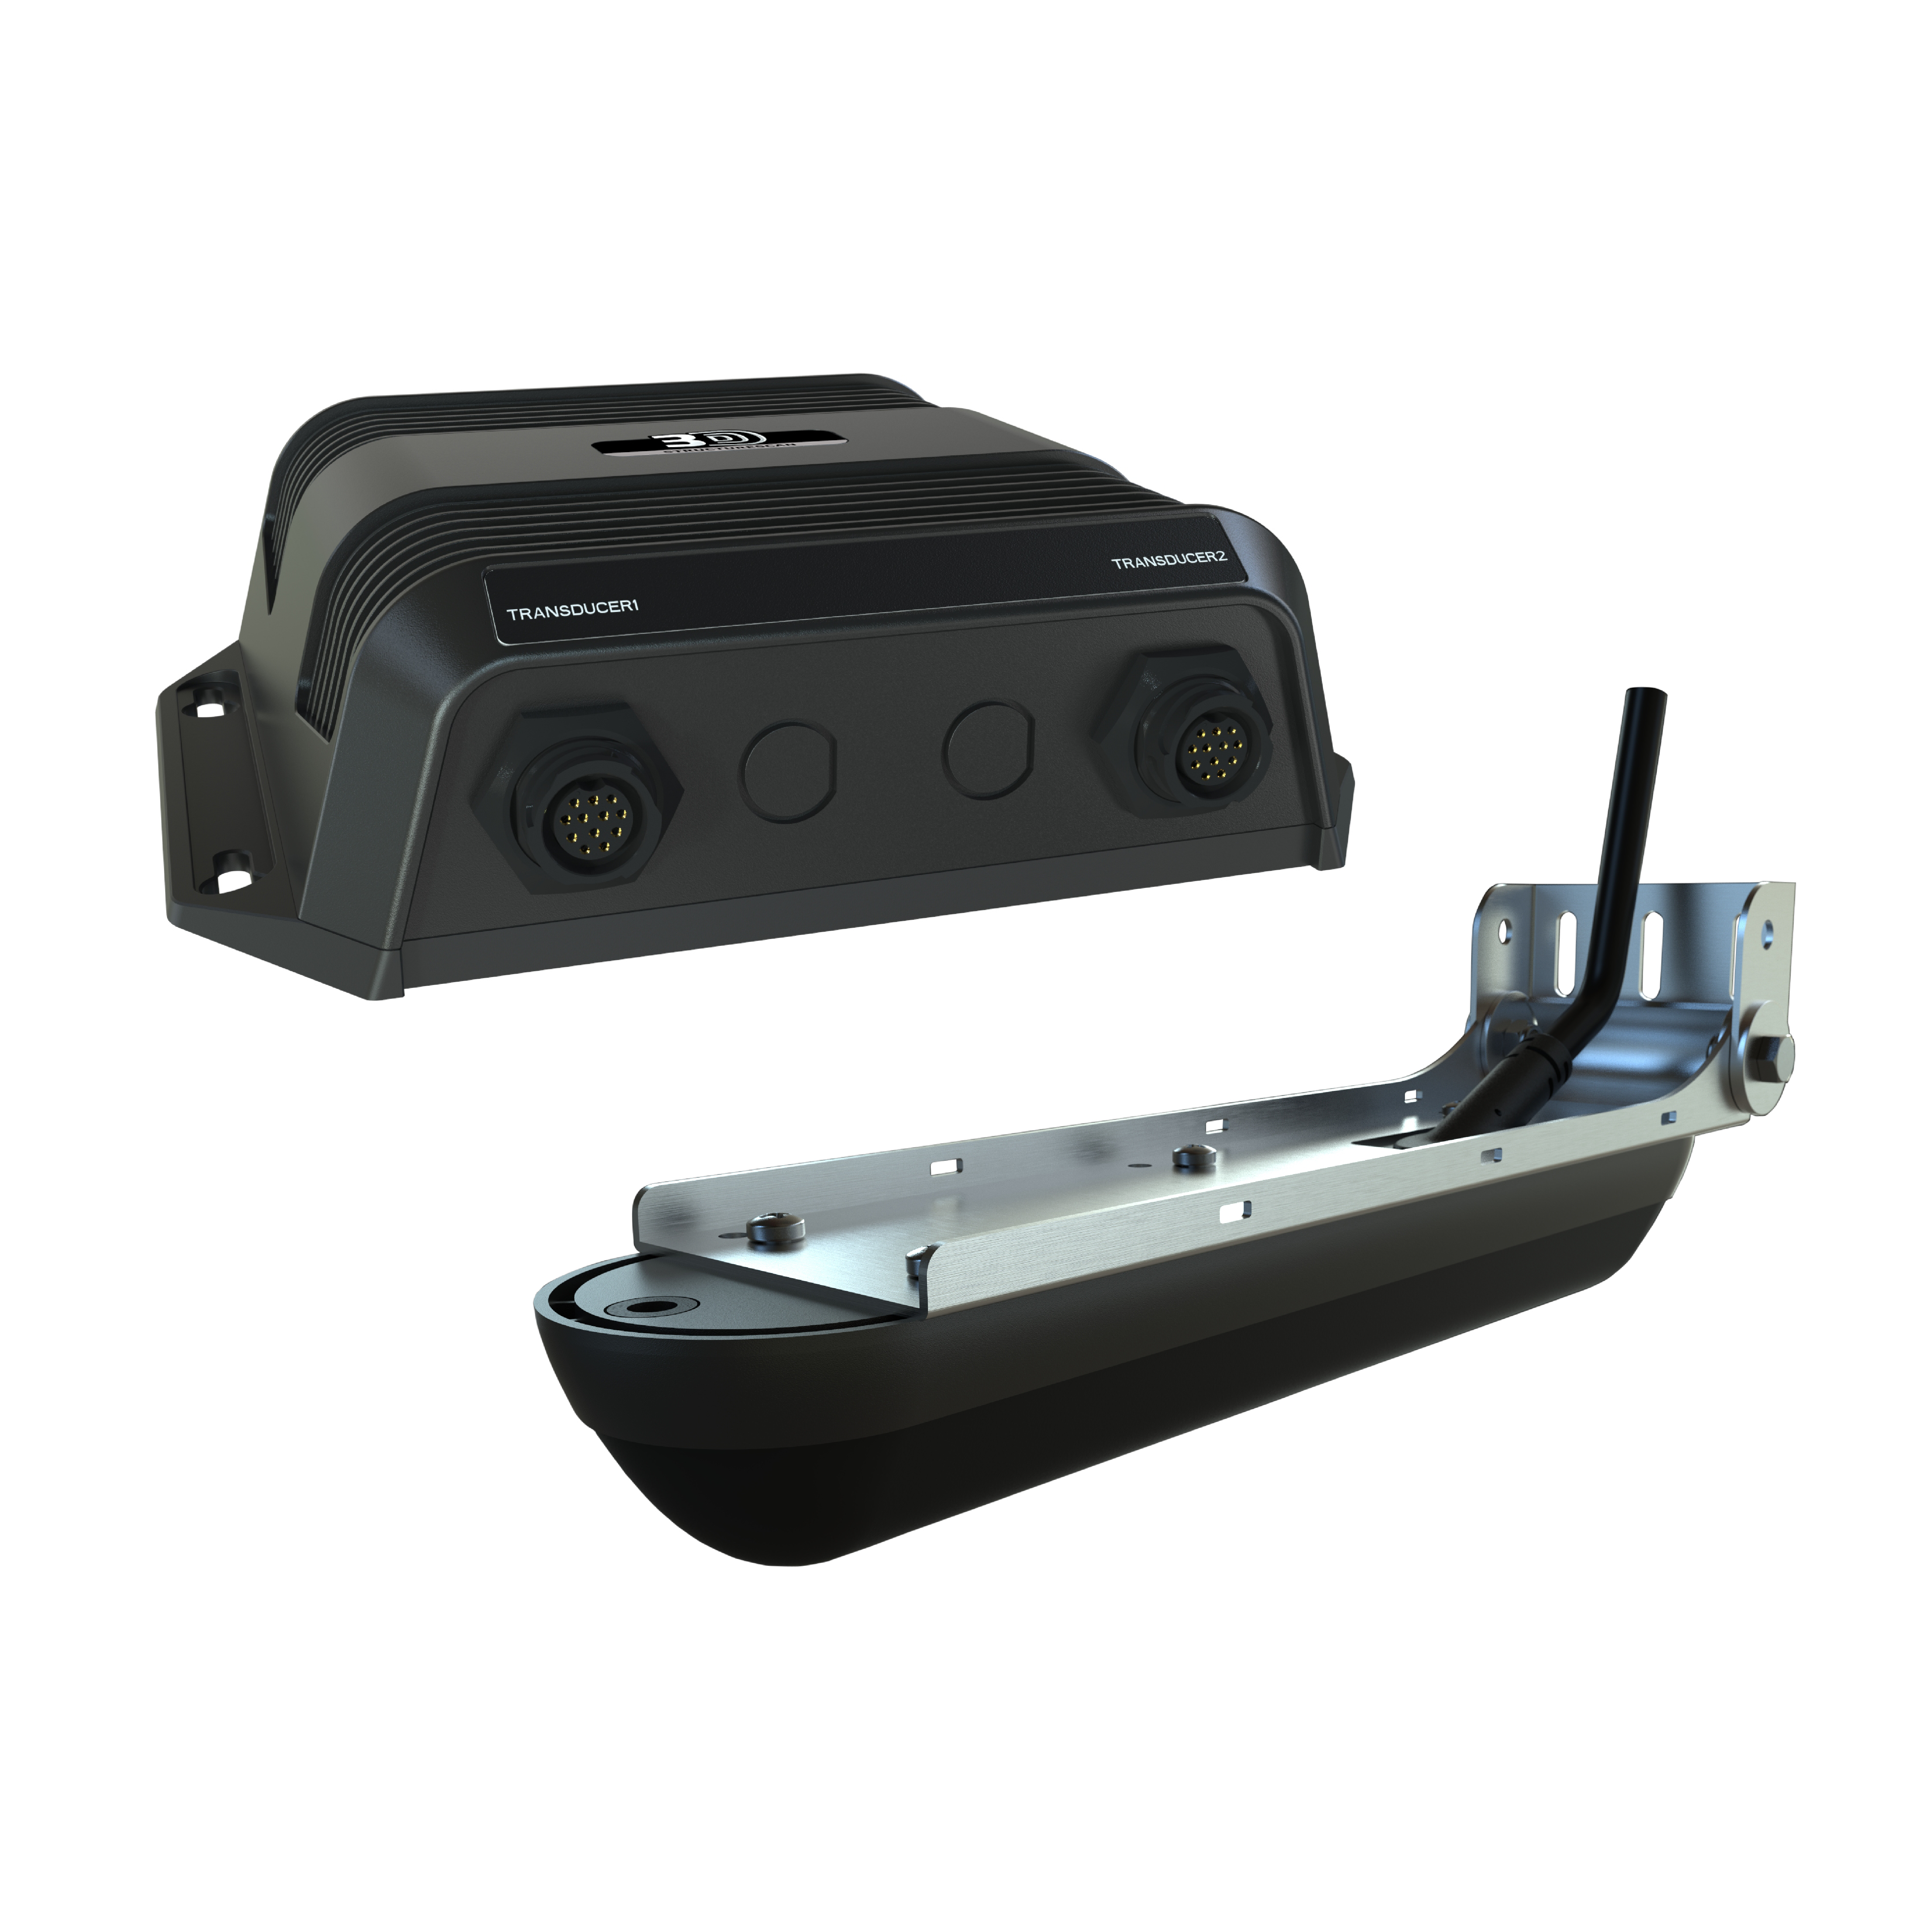 lowrance structure scan 3d sonar module transducer